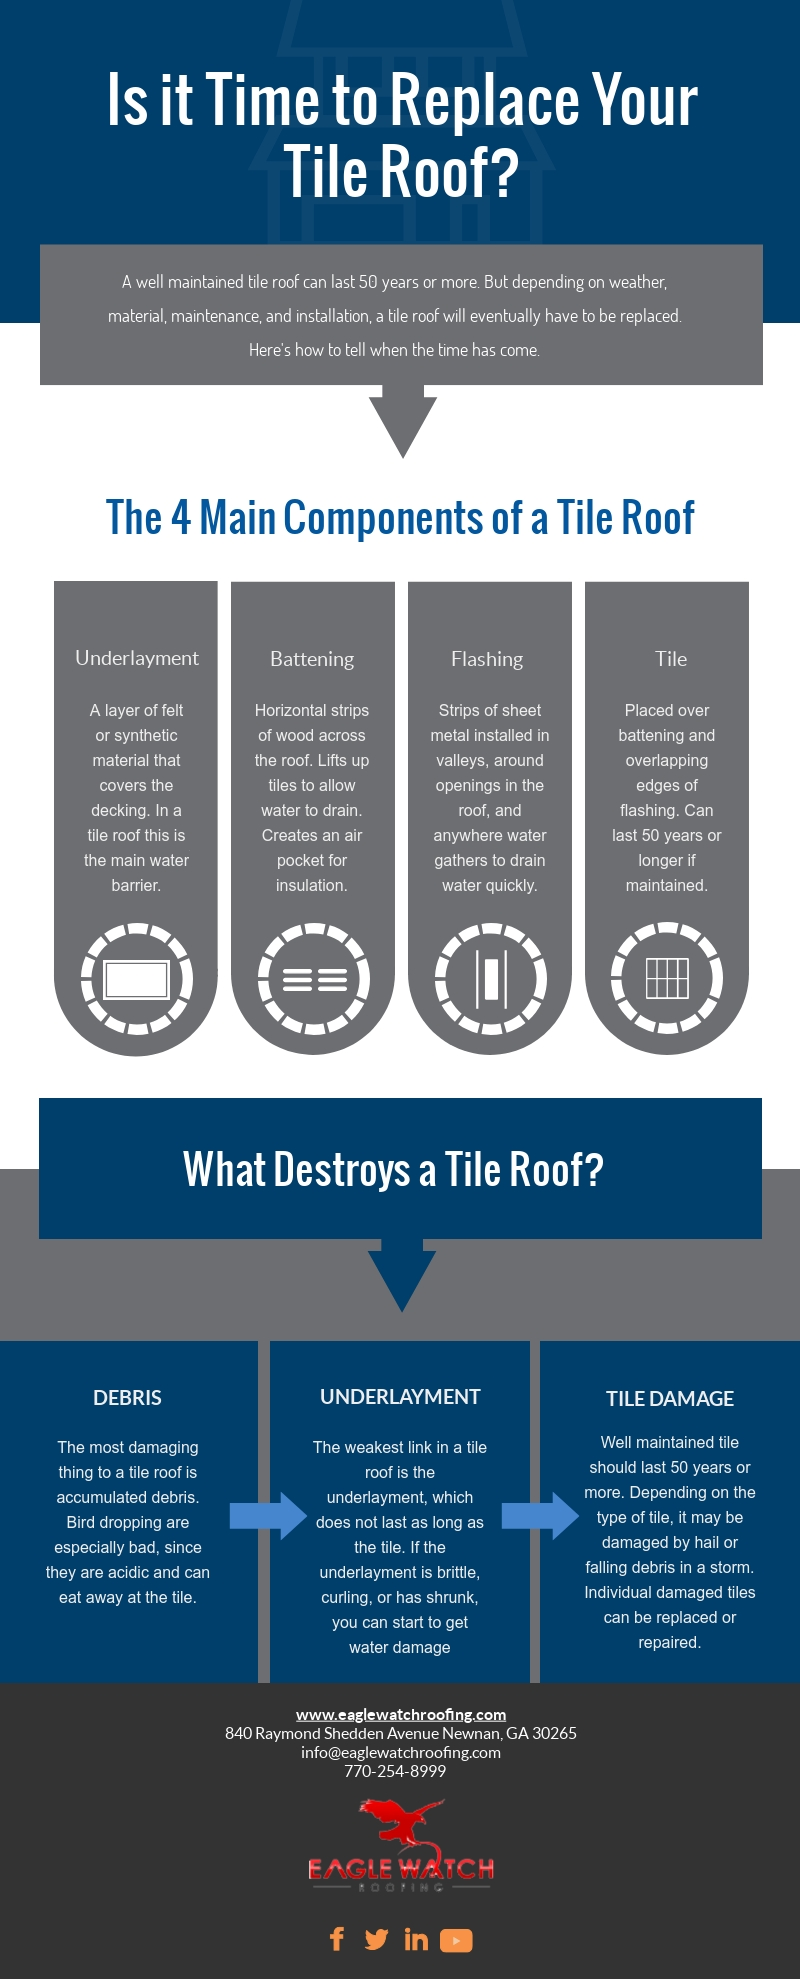 Is it Time to Replace Your Tile Roof [infographic]